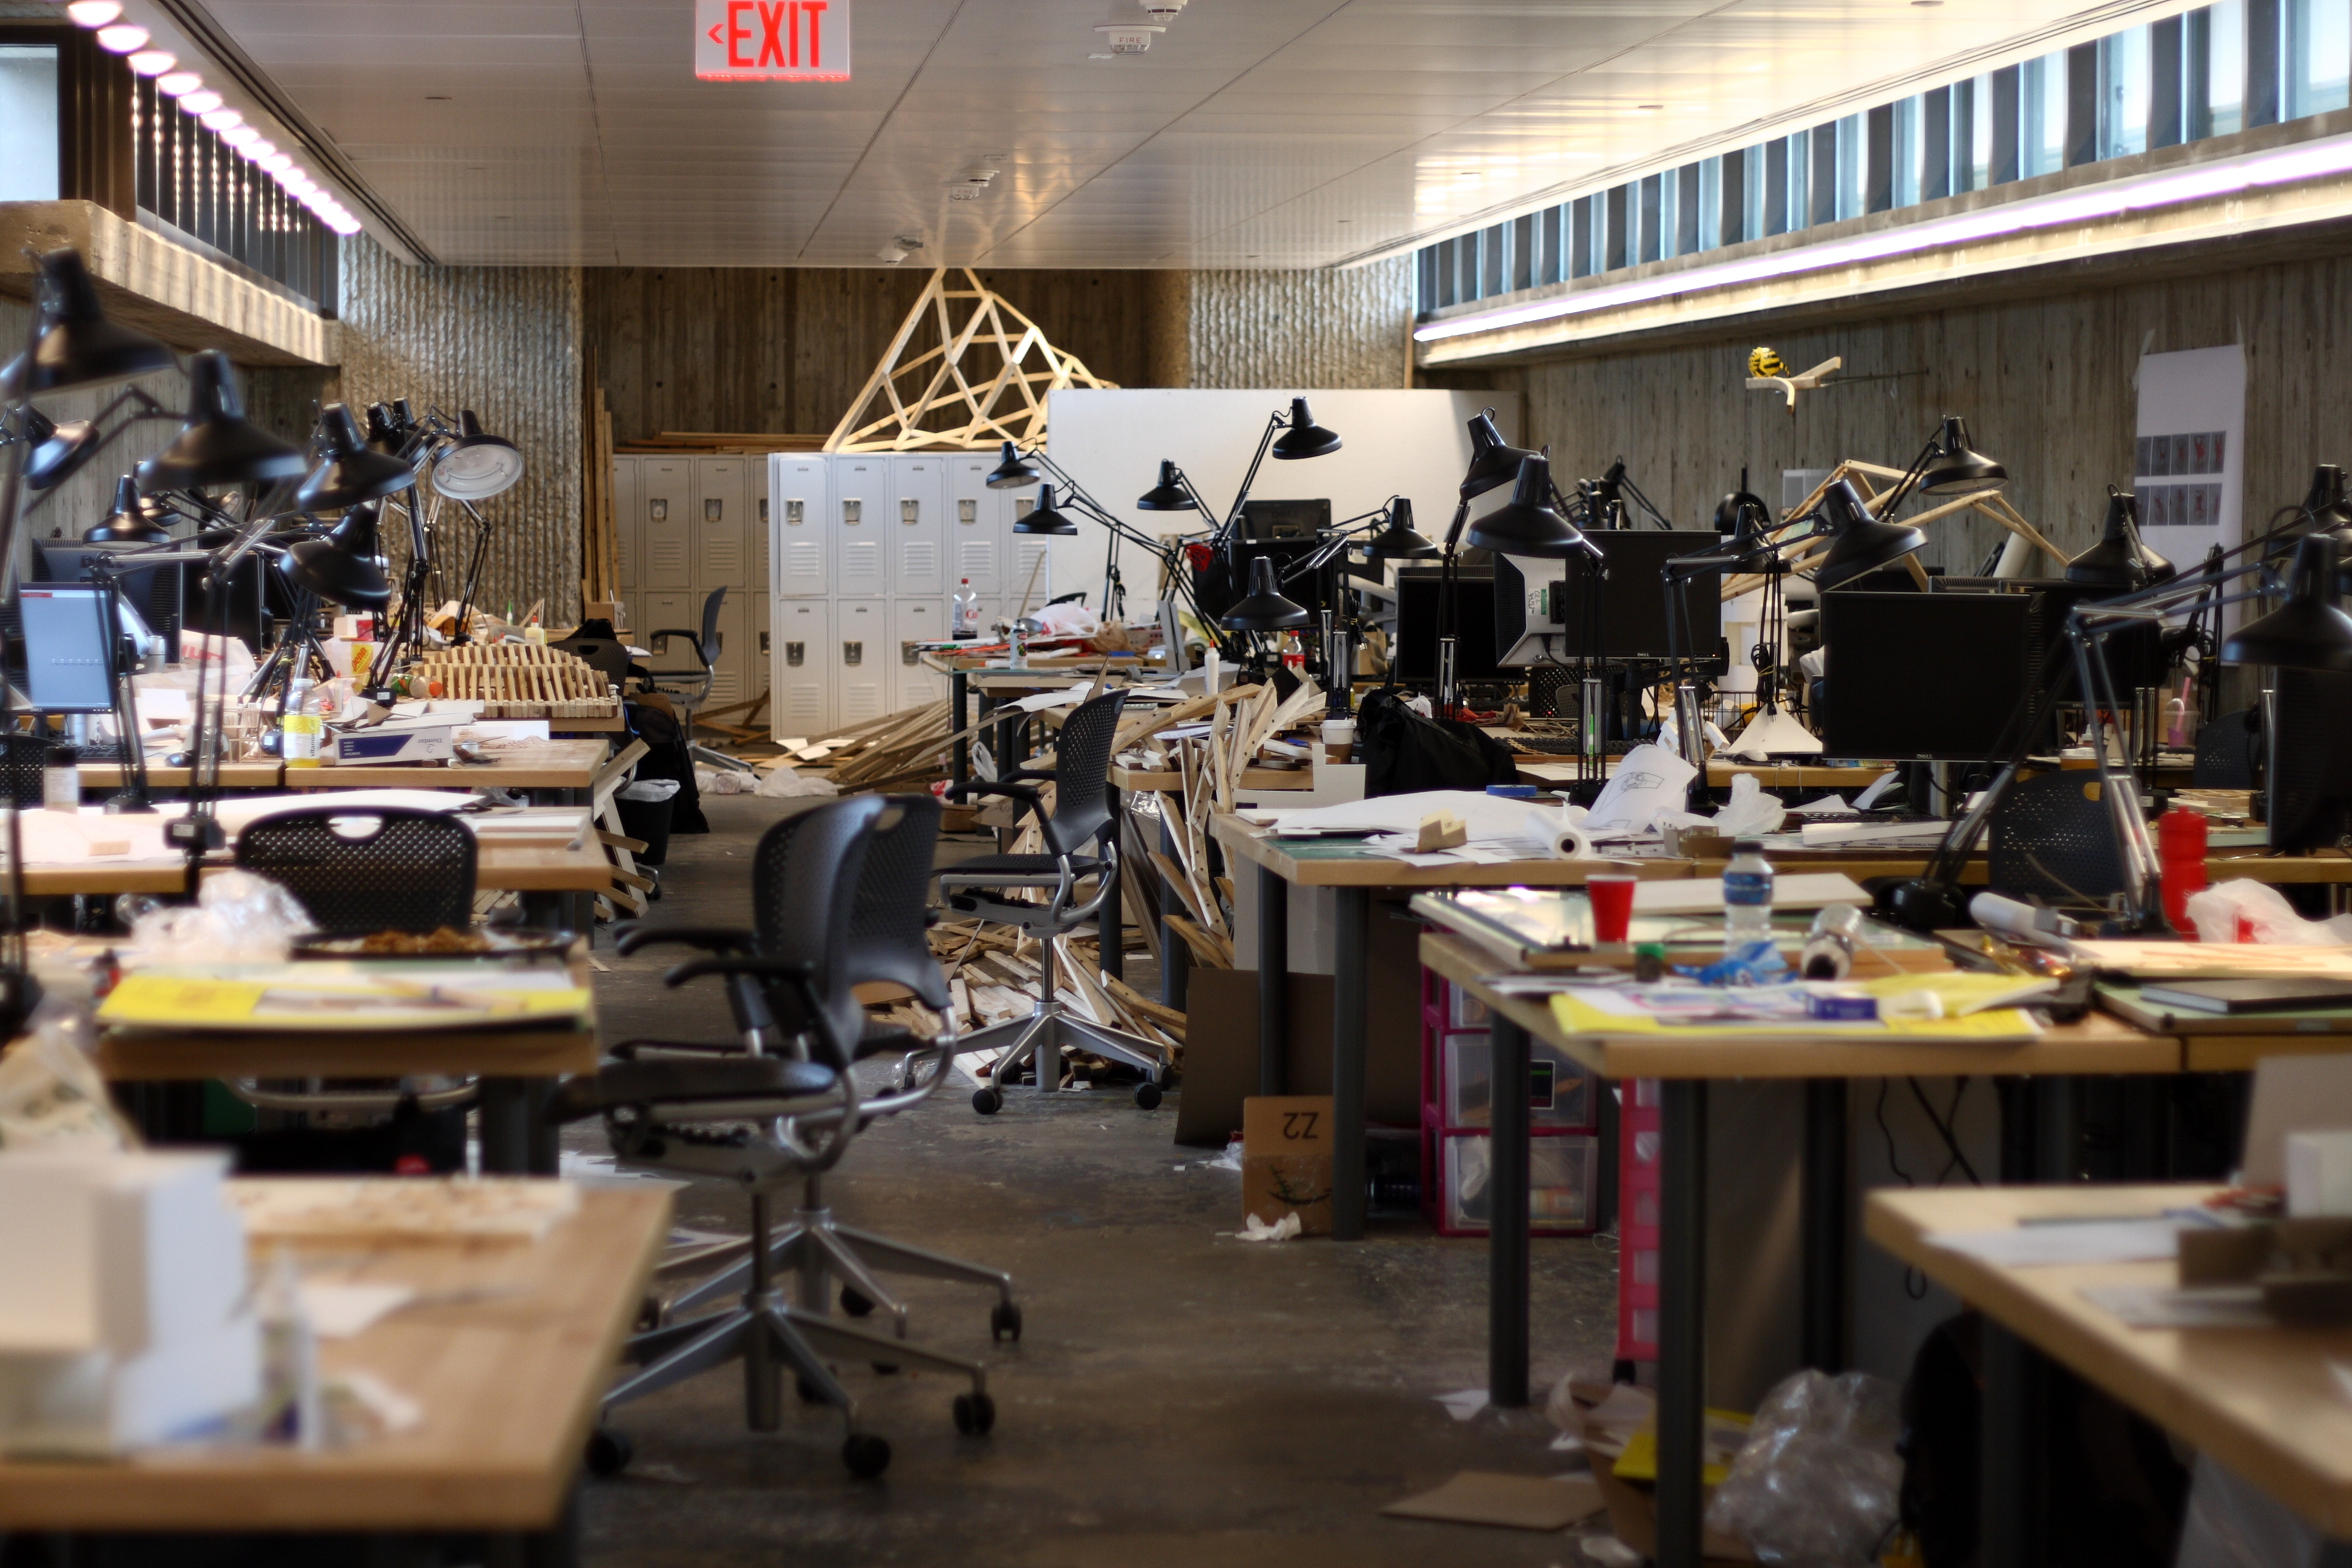 Desks_of_architecture_students_in_the_Yale_Art_and_Architecture_Building,_September_29,_2008